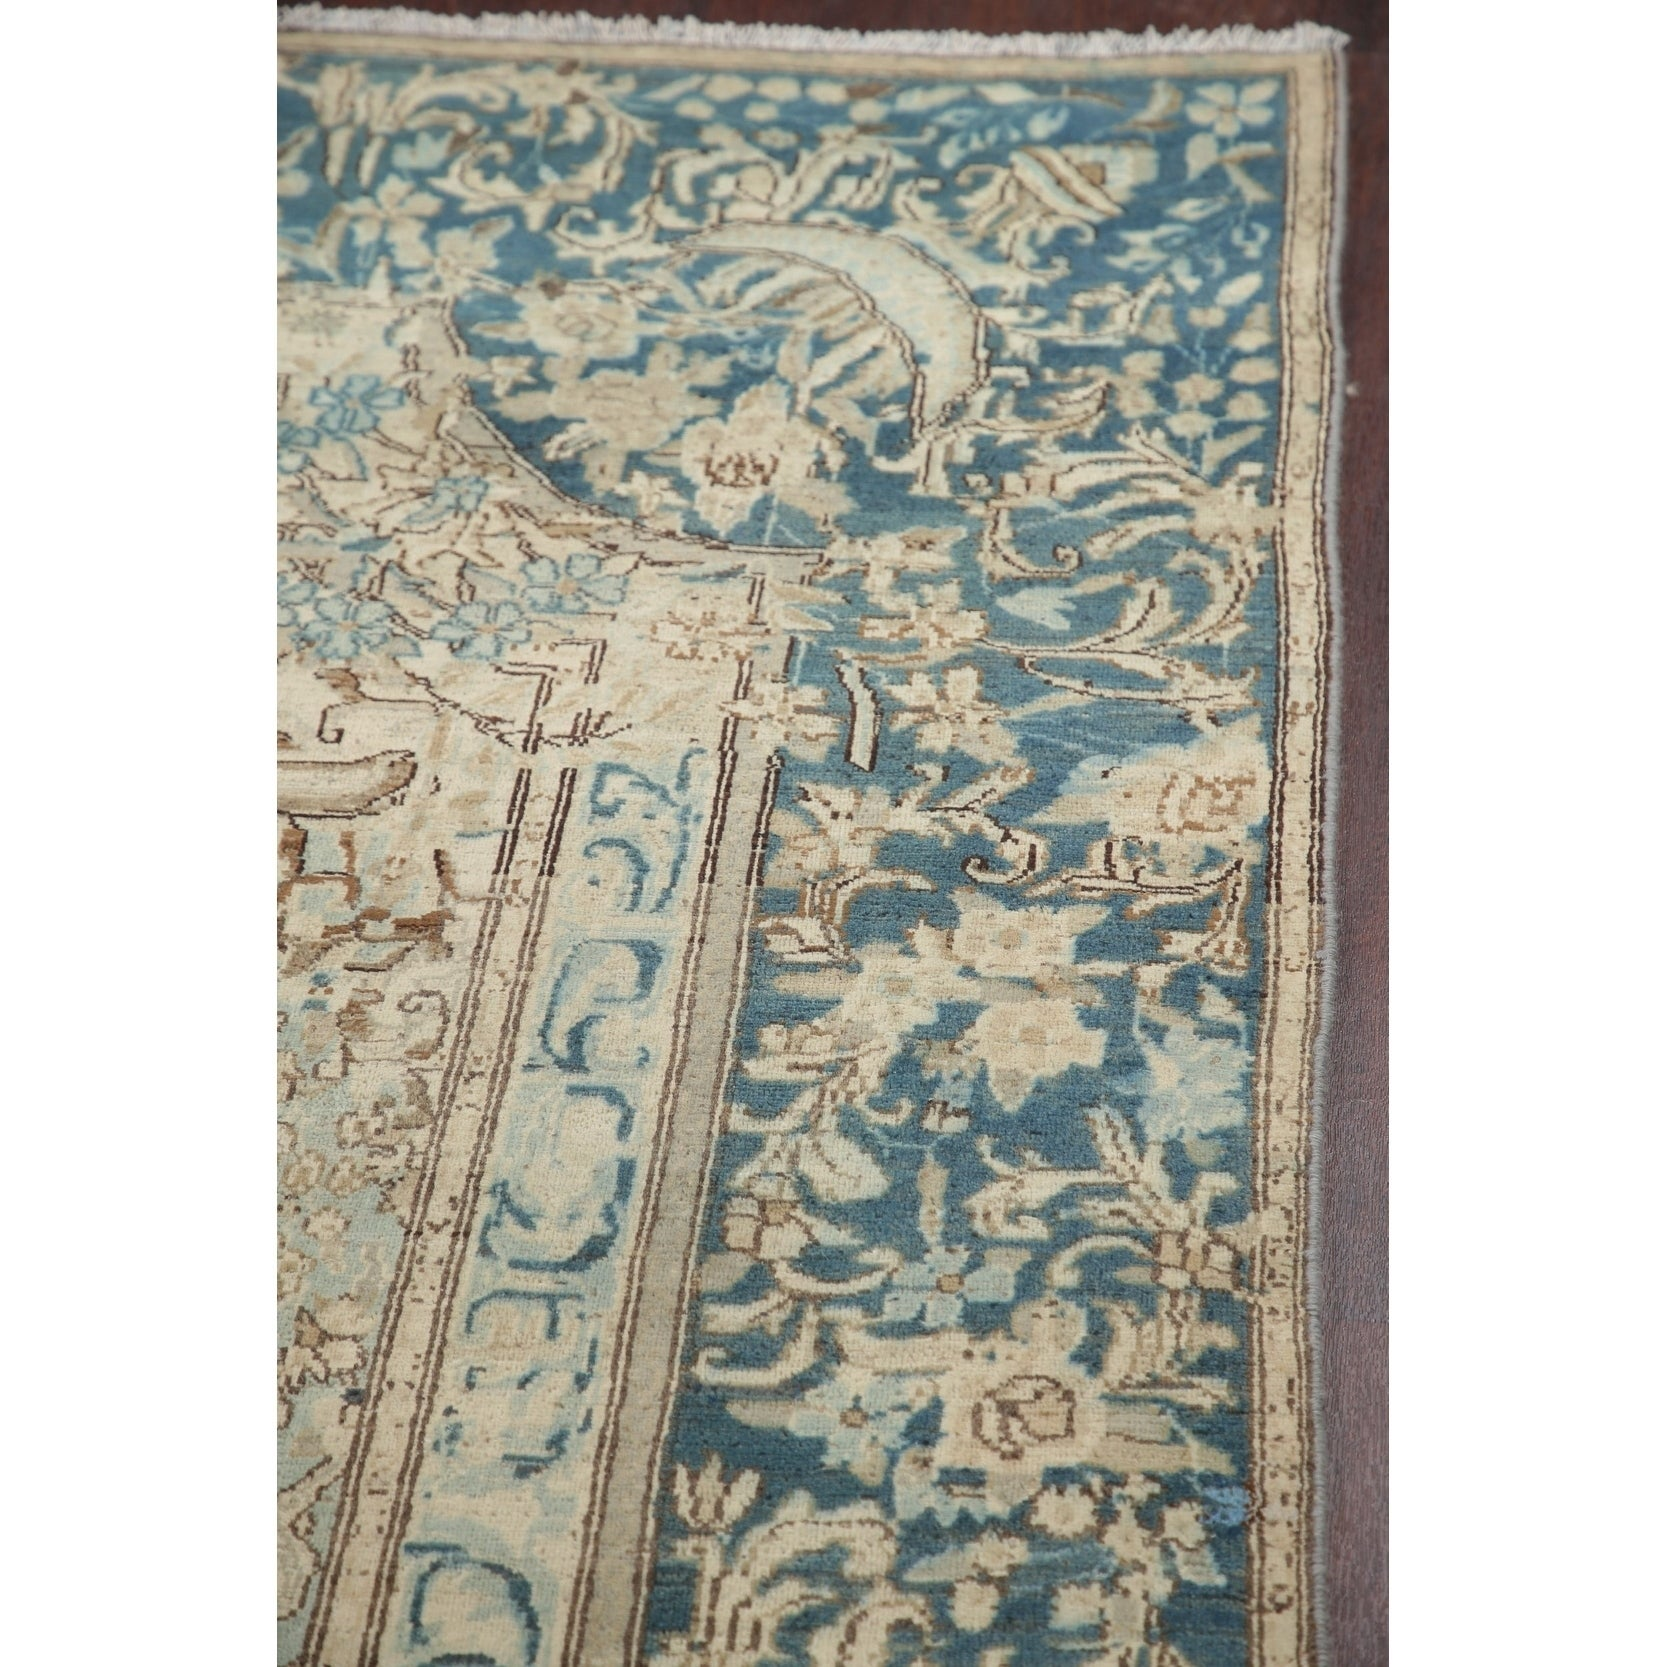 Antique Washed-out Color Muted Persian Area Rug Distressed Oriental Carpet 9x13 Outstanding Features Rugs & Carpets